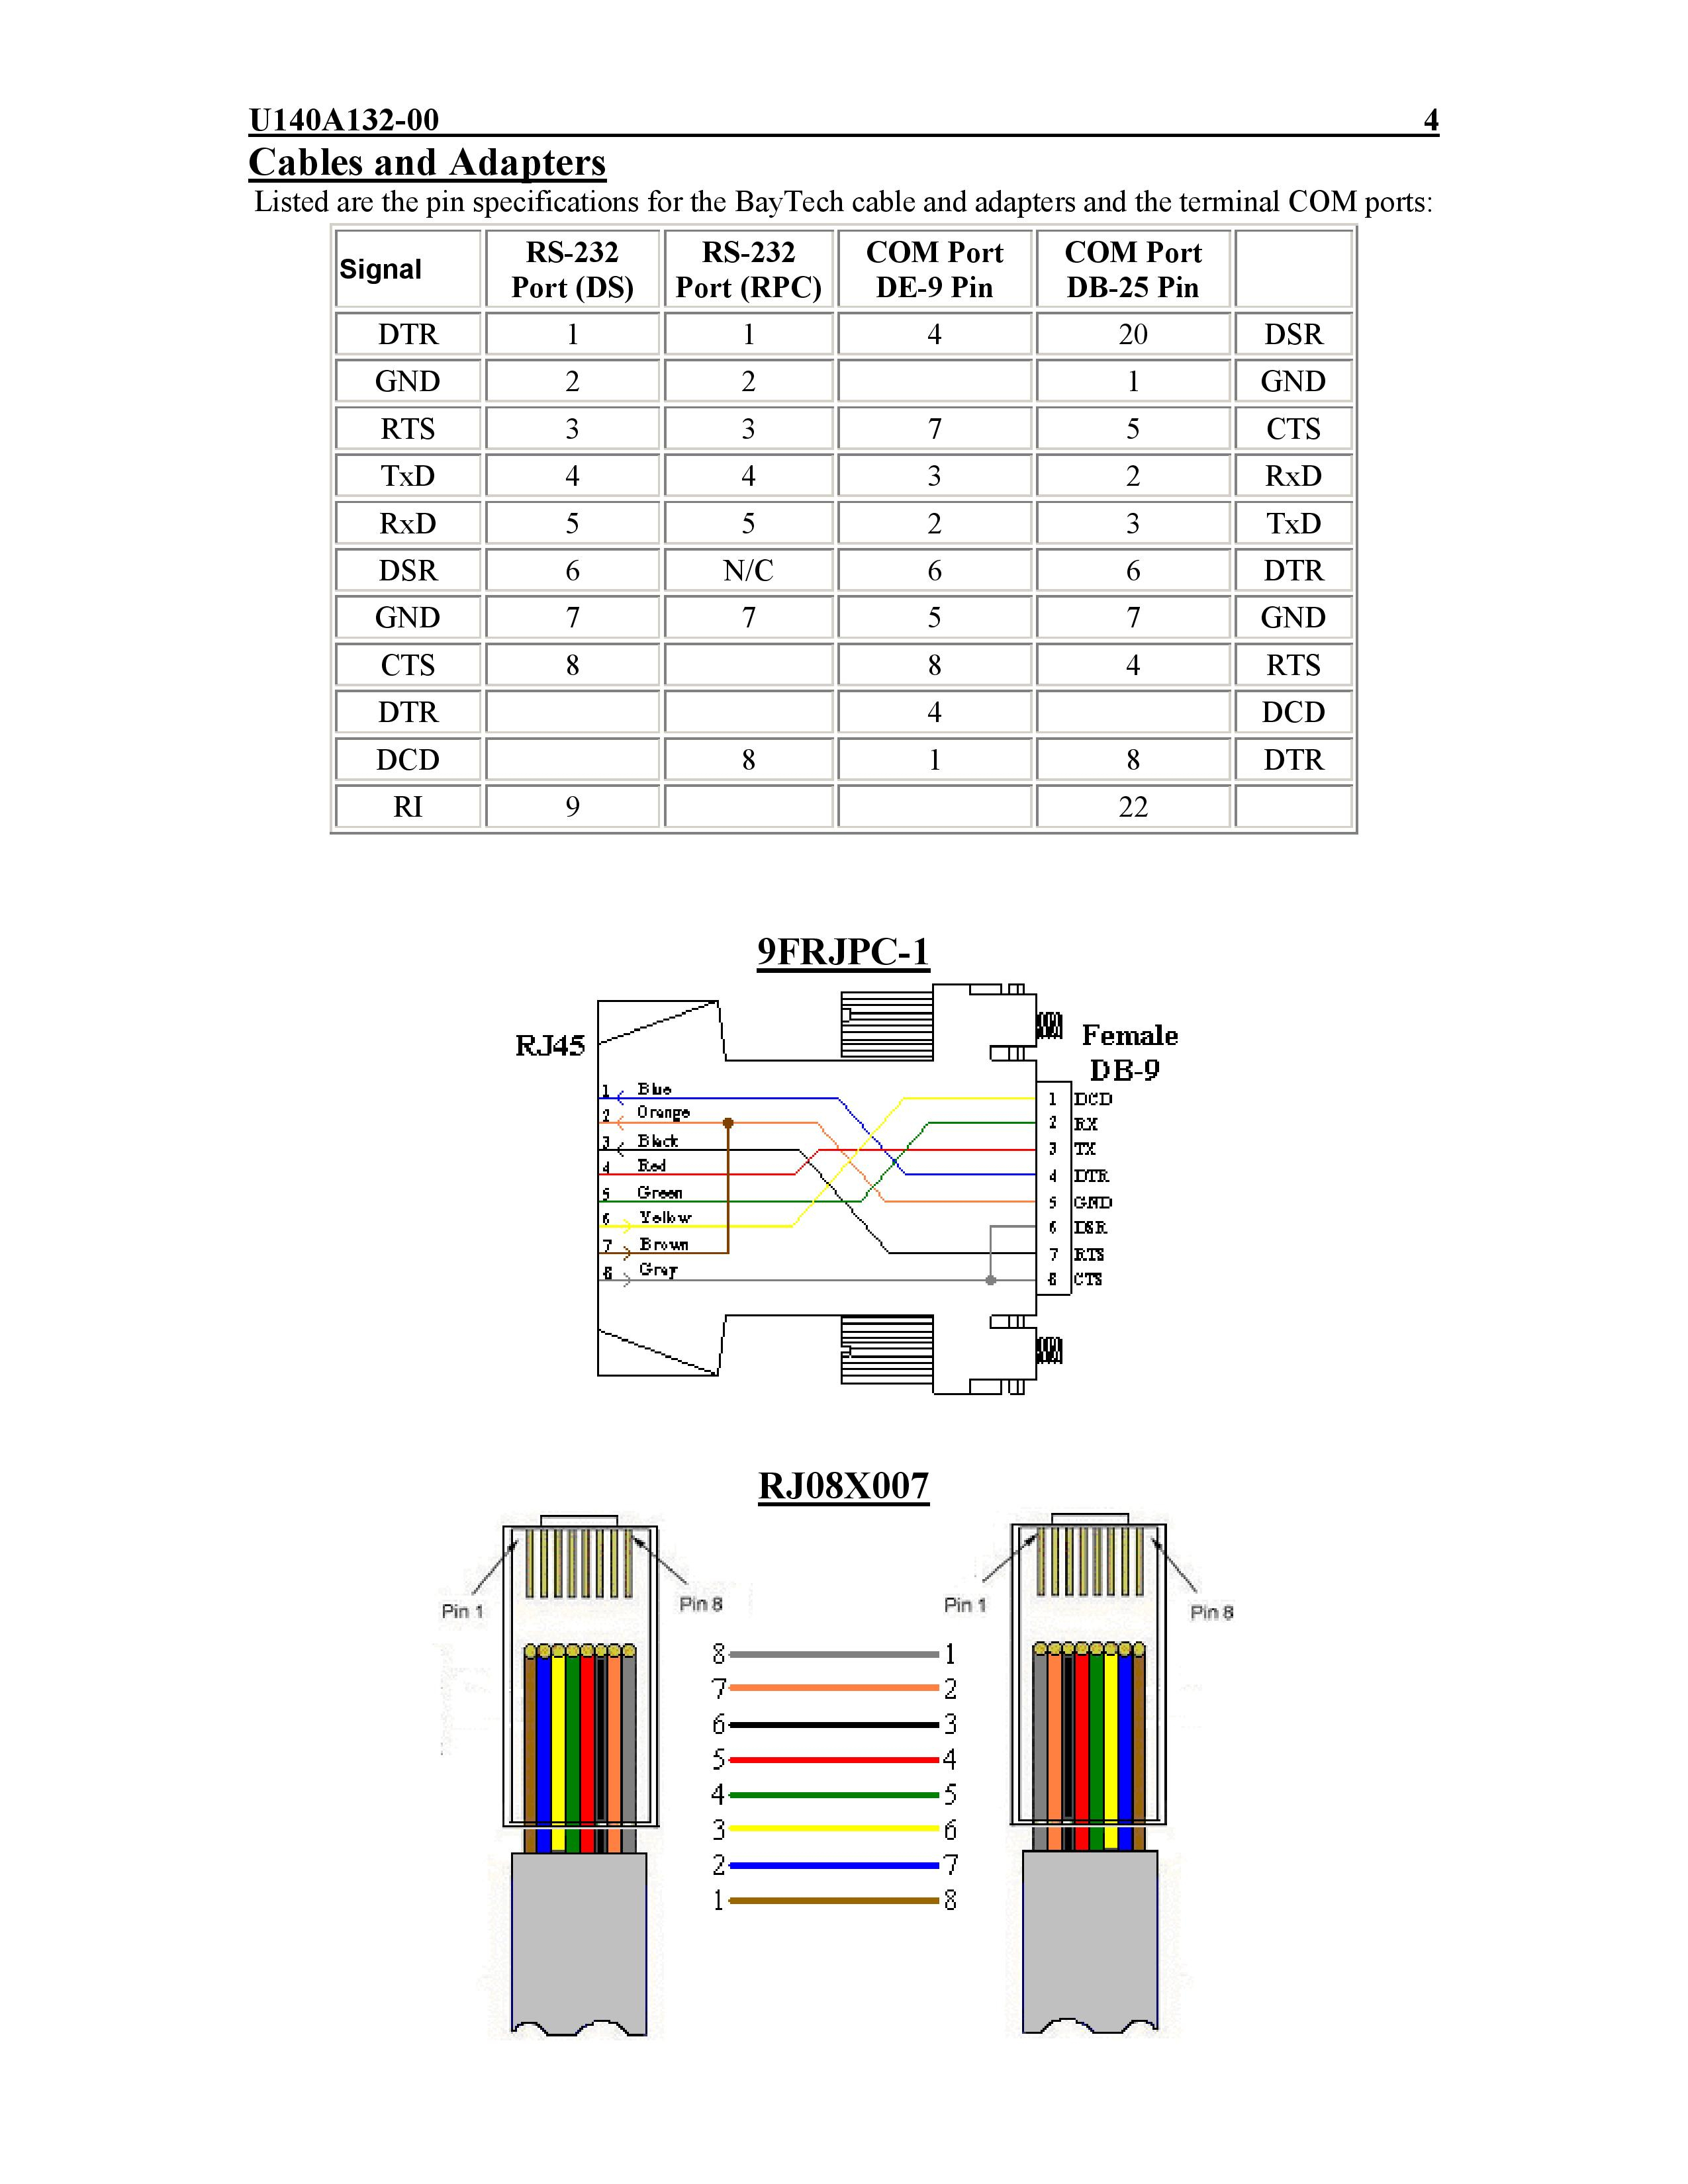 Superb Usb To Parallel Printer Cable Wiring Diagram Usb Wiring Diagram Wiring Digital Resources Jebrpcompassionincorg